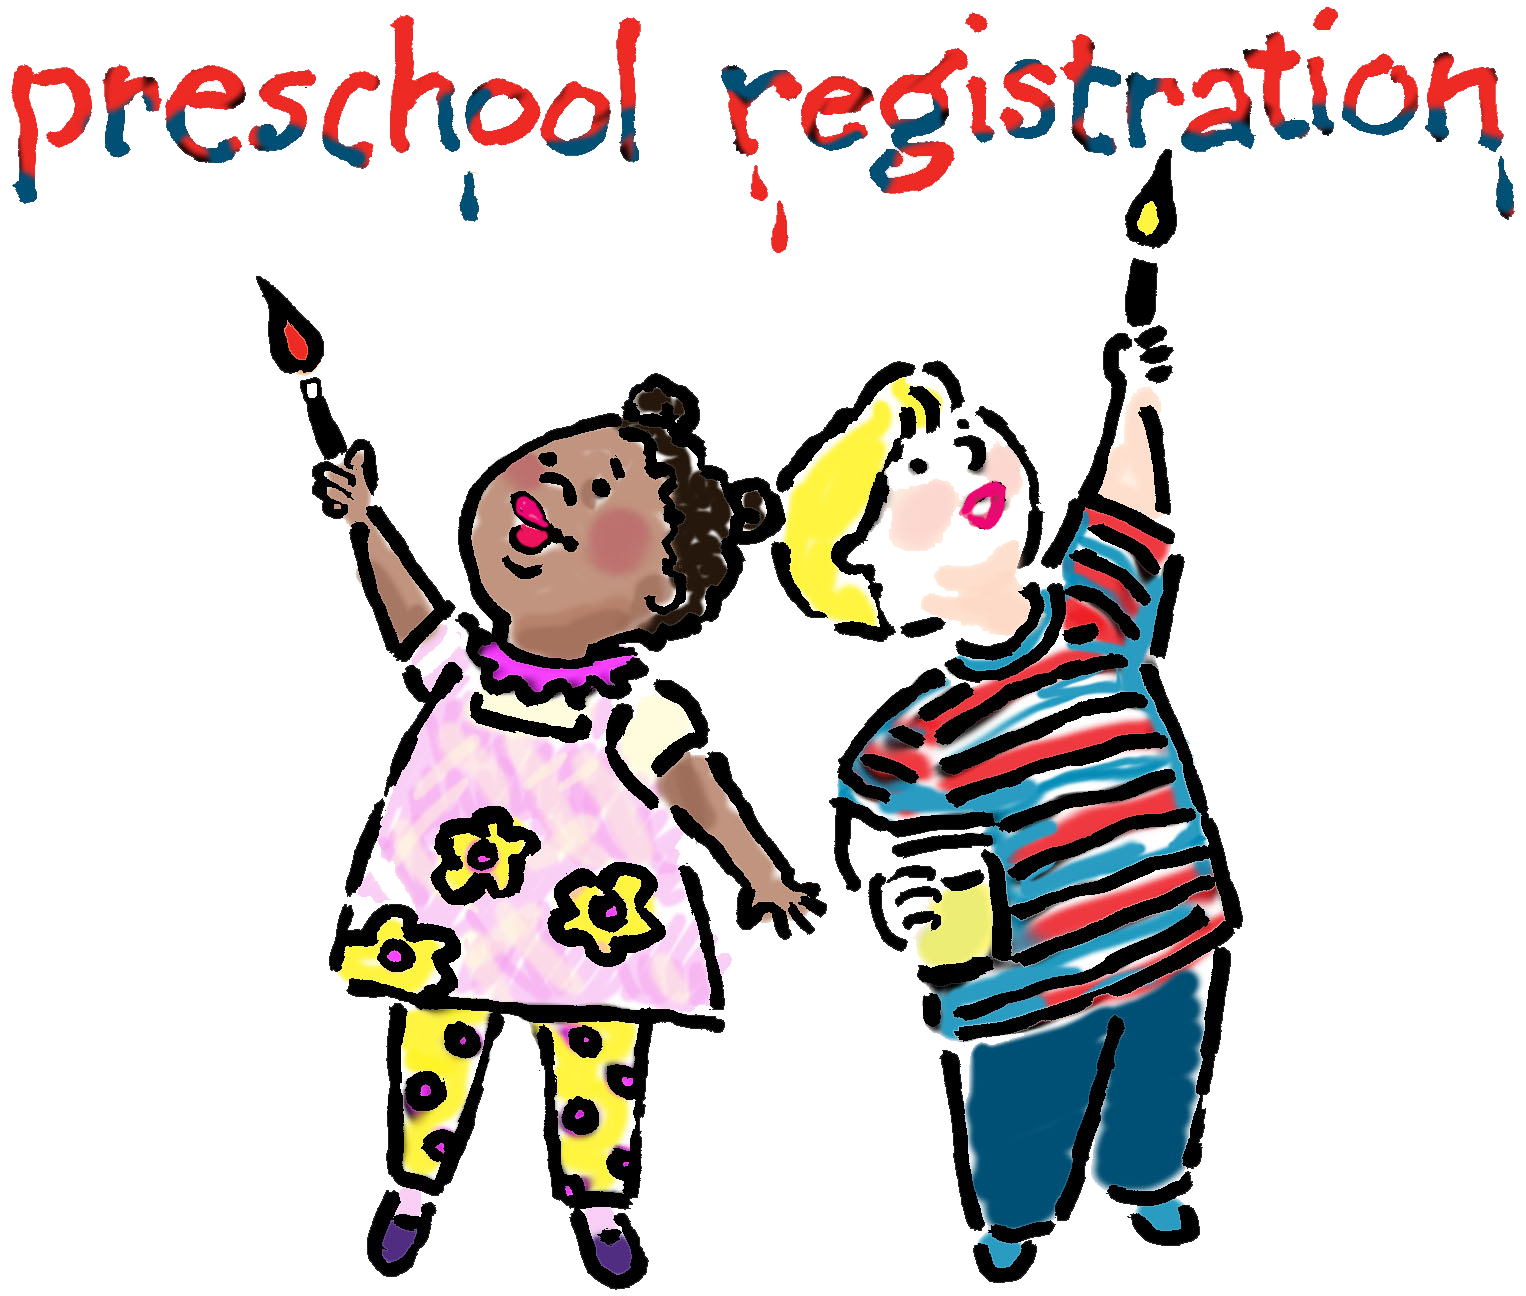 Open house clipart free clip art royalty free stock Preschool Registration Clipart clip art royalty free stock